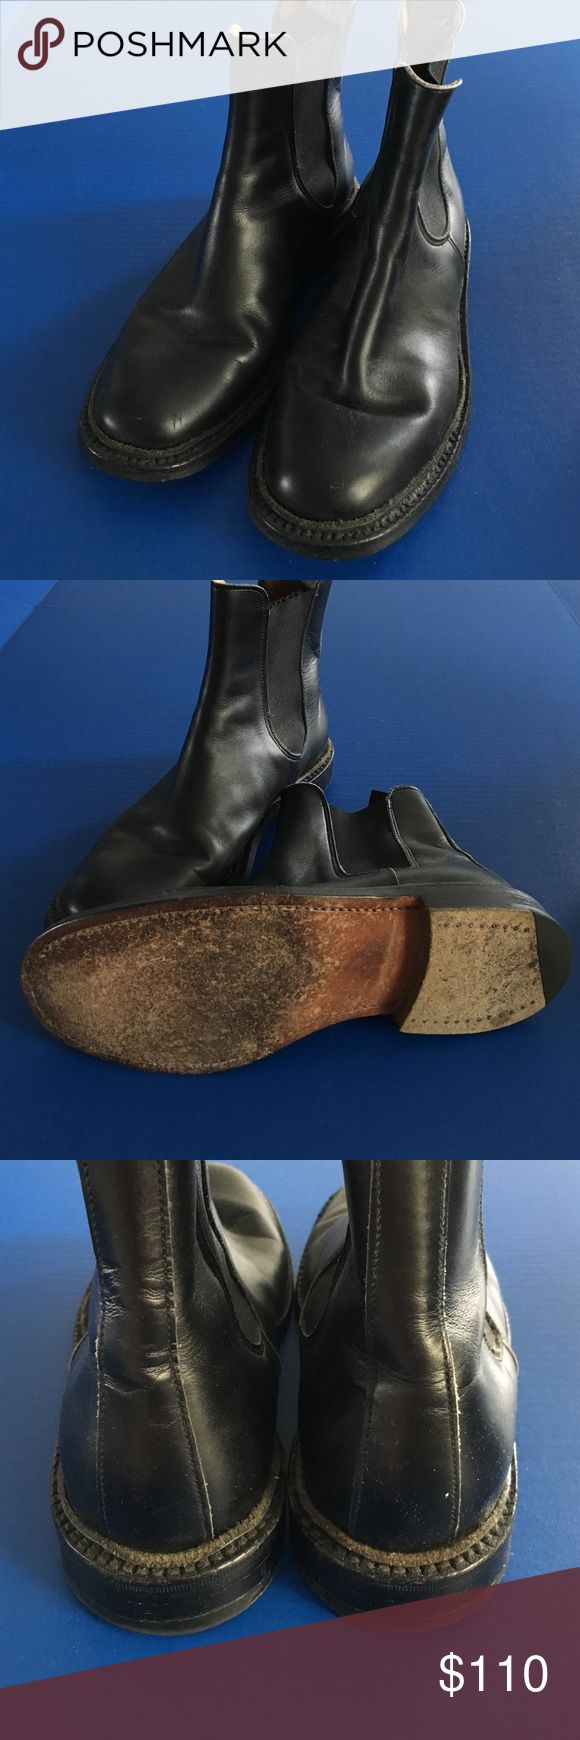 Alfred Sargent Boots Since 1899 Sargent (London) has been making these hand sewn shoes. Classic, durable, gets better with wear and age. Alfred Sargent Shoes Ankle Boots & Booties